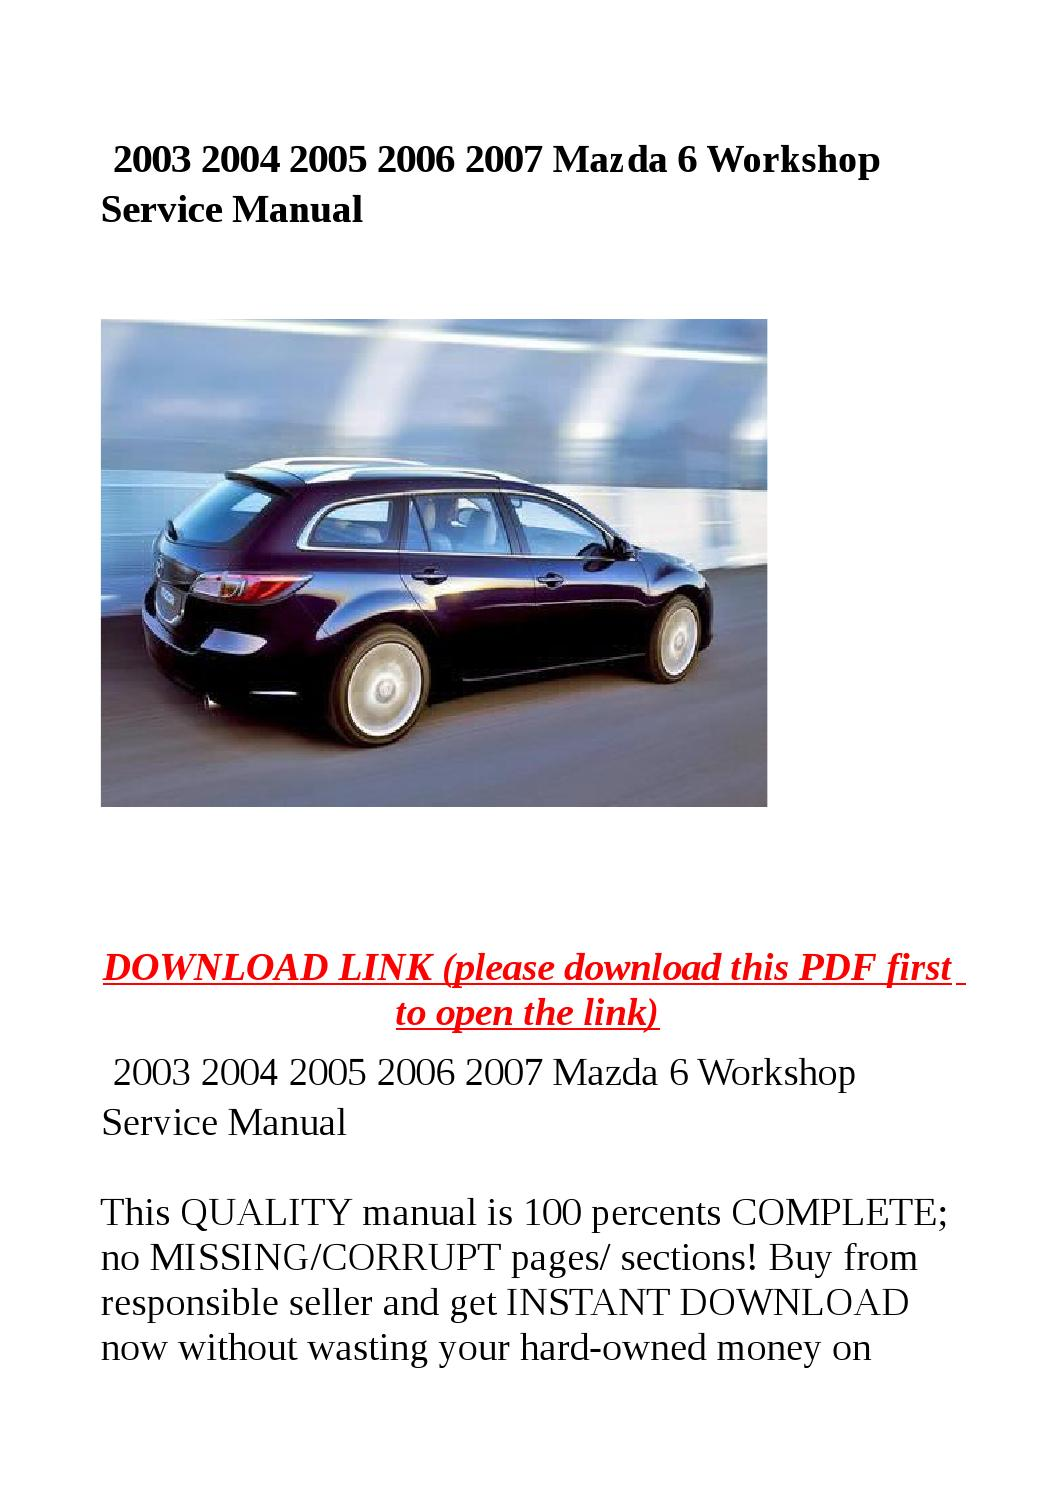 2003 2004 2005 2006 2007 Mazda 6 Workshop Service Manual By Abcdeefr